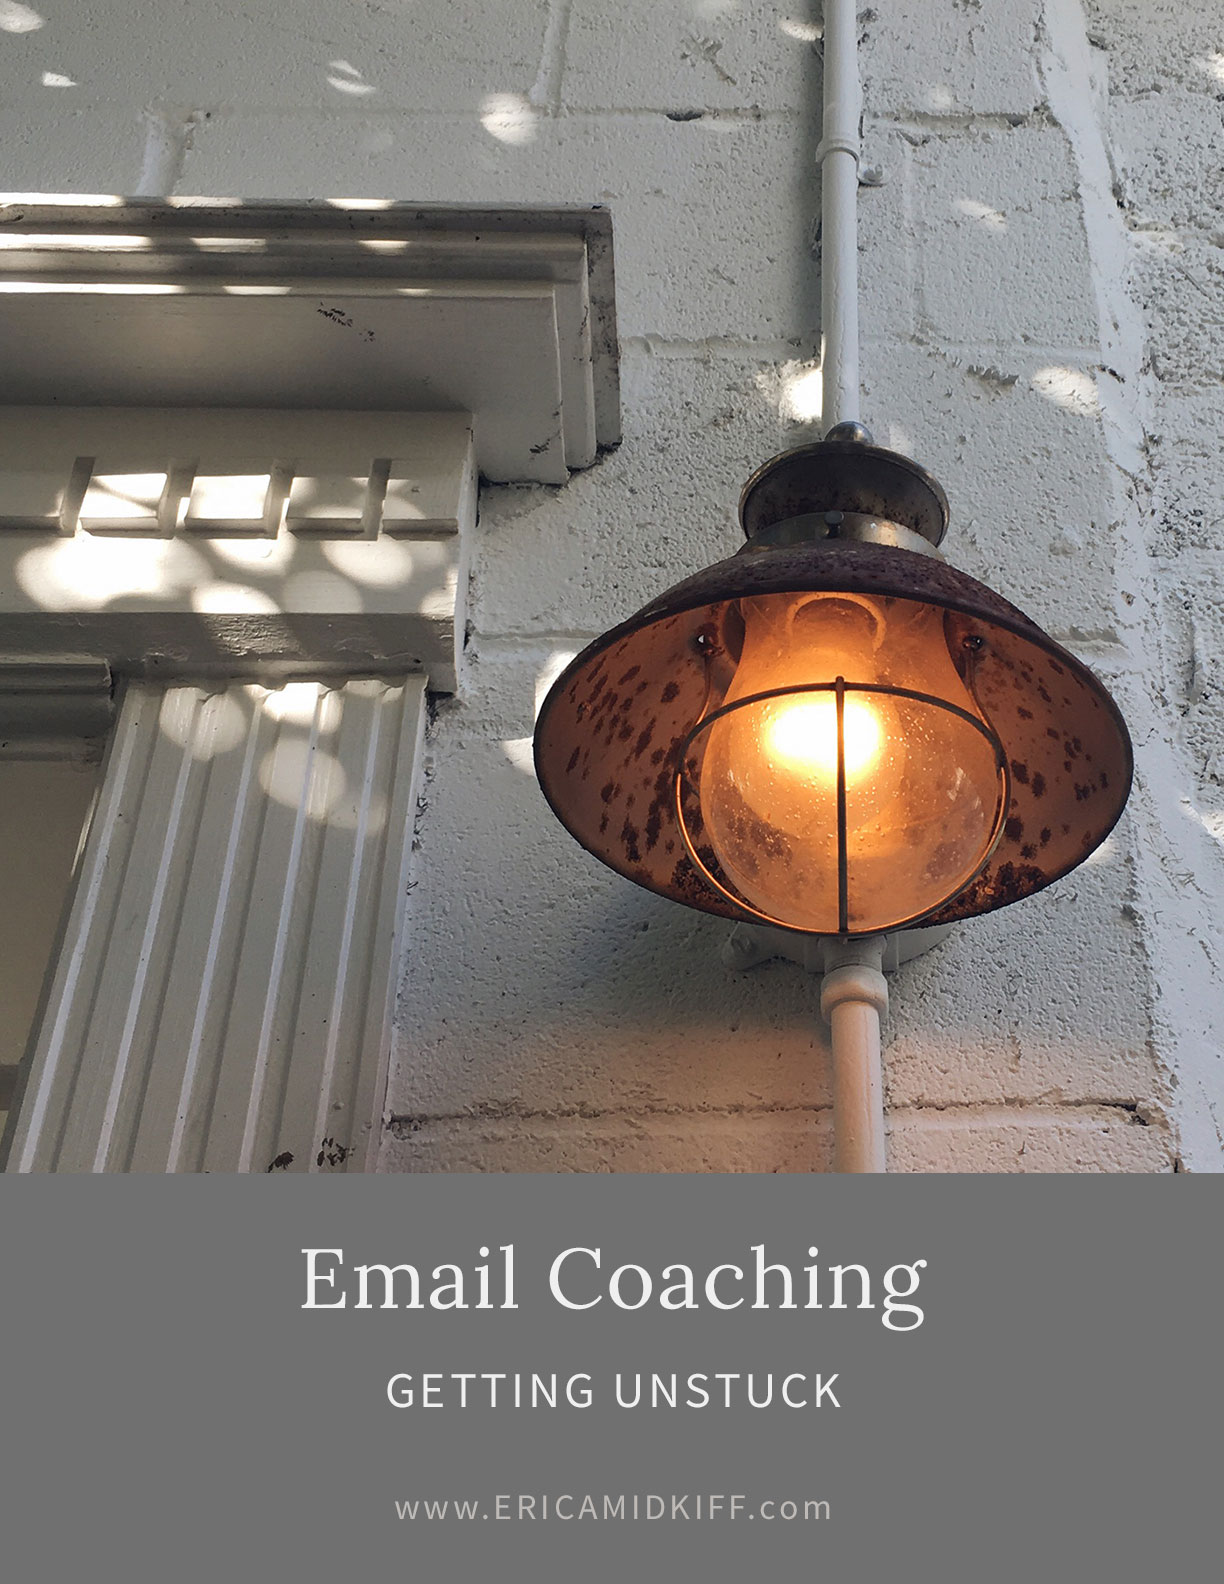 Erica-Midkiff---Email-Coaching---Getting-Unstuck.jpg